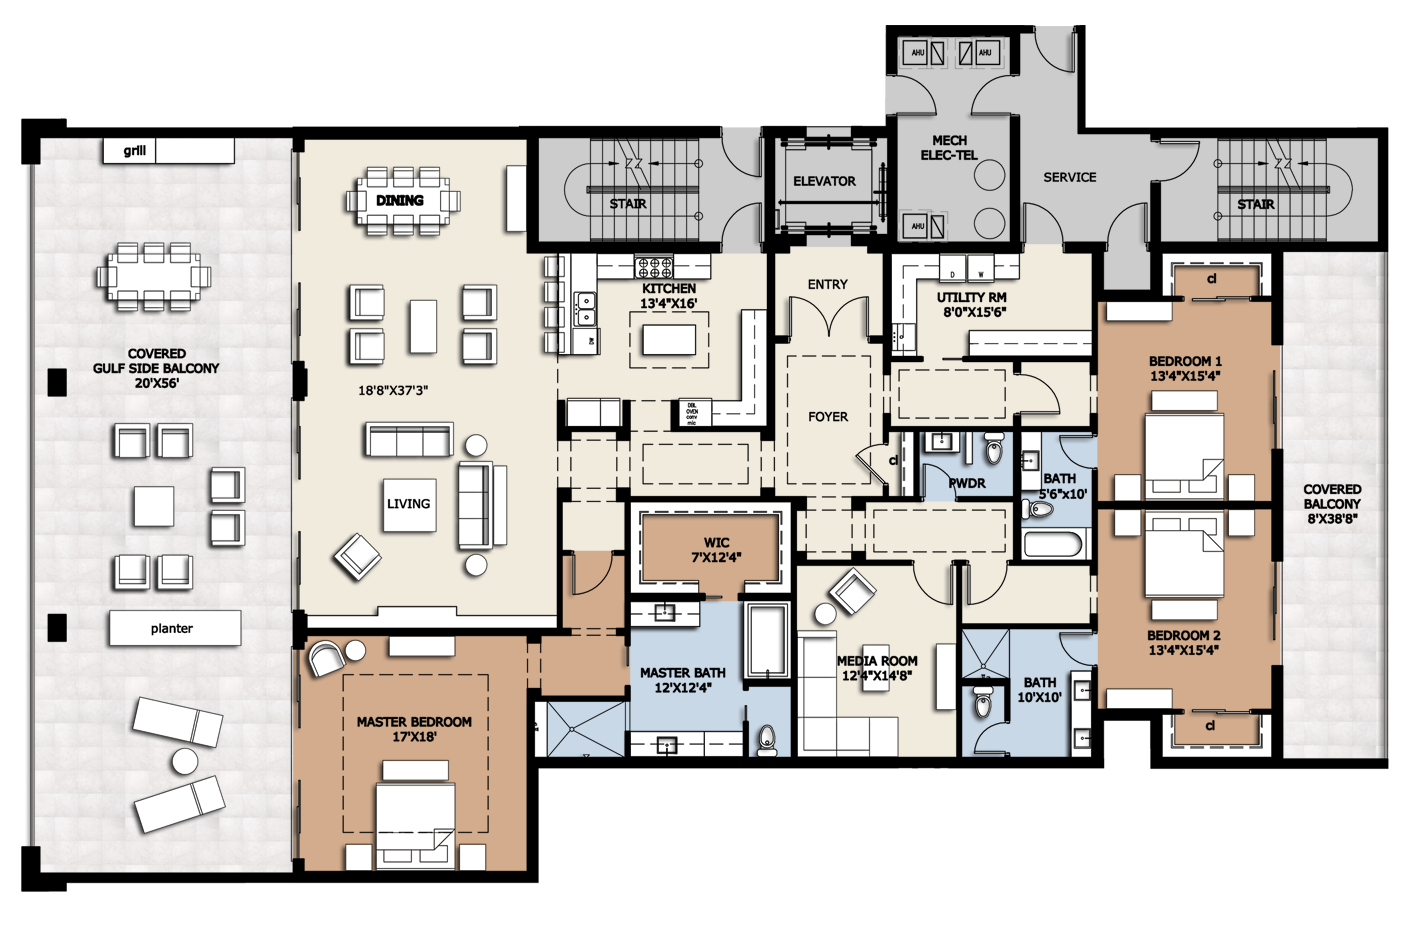 Floor plan residence b infinity longboat key condos for for 1 bedroom condo floor plans